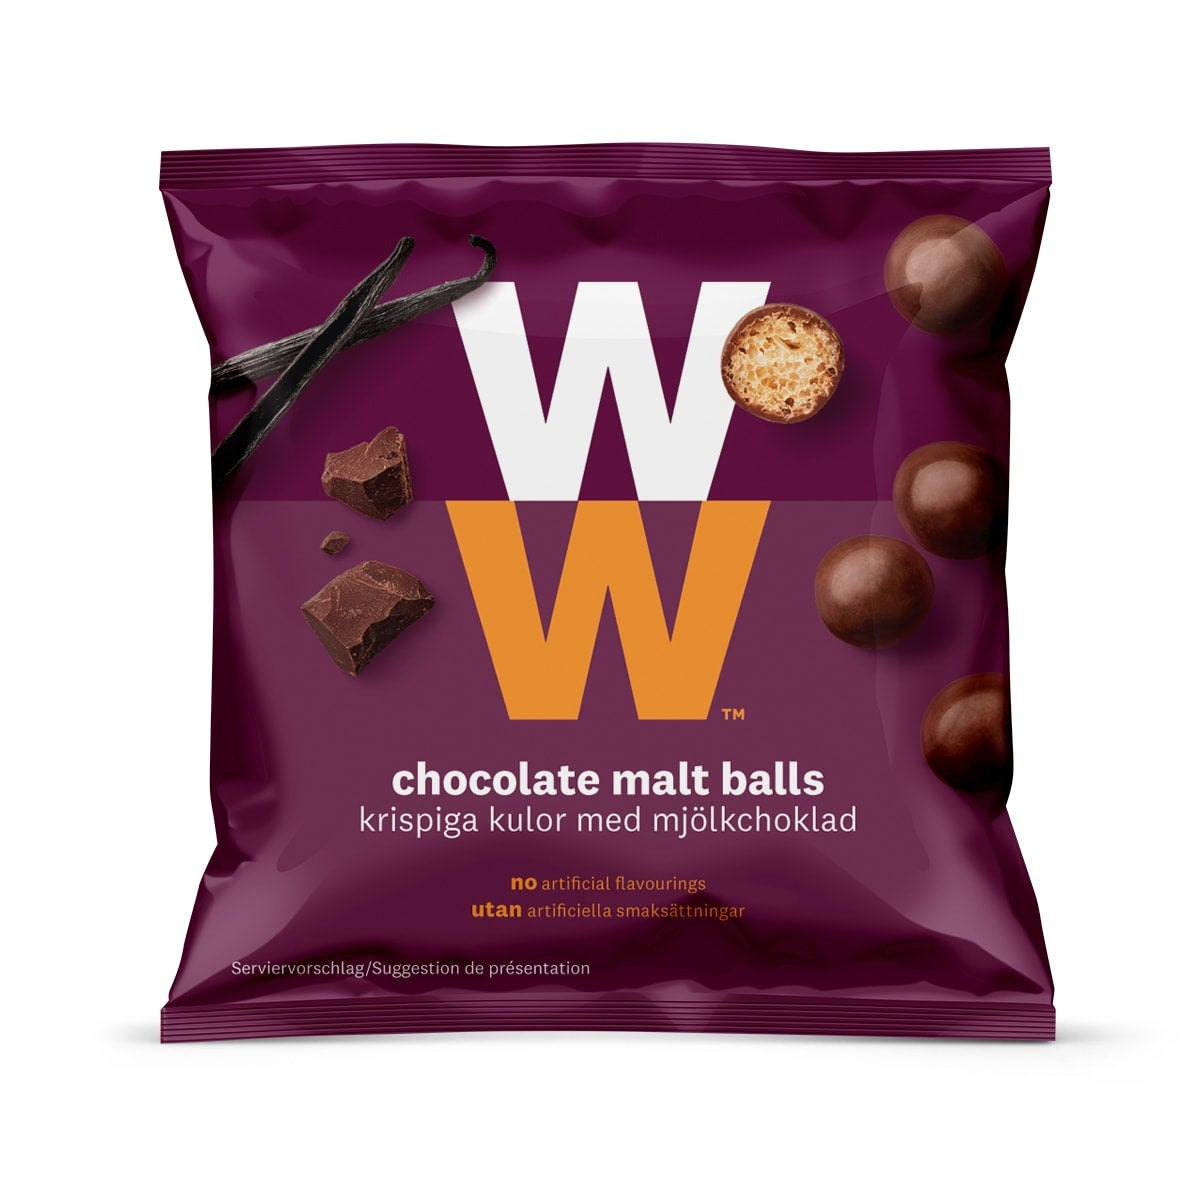 Crispy WW Chocolate Malt cereal balls wrapped in real milk chocolate, crunchy, airy centre, 2 SmartPoints values